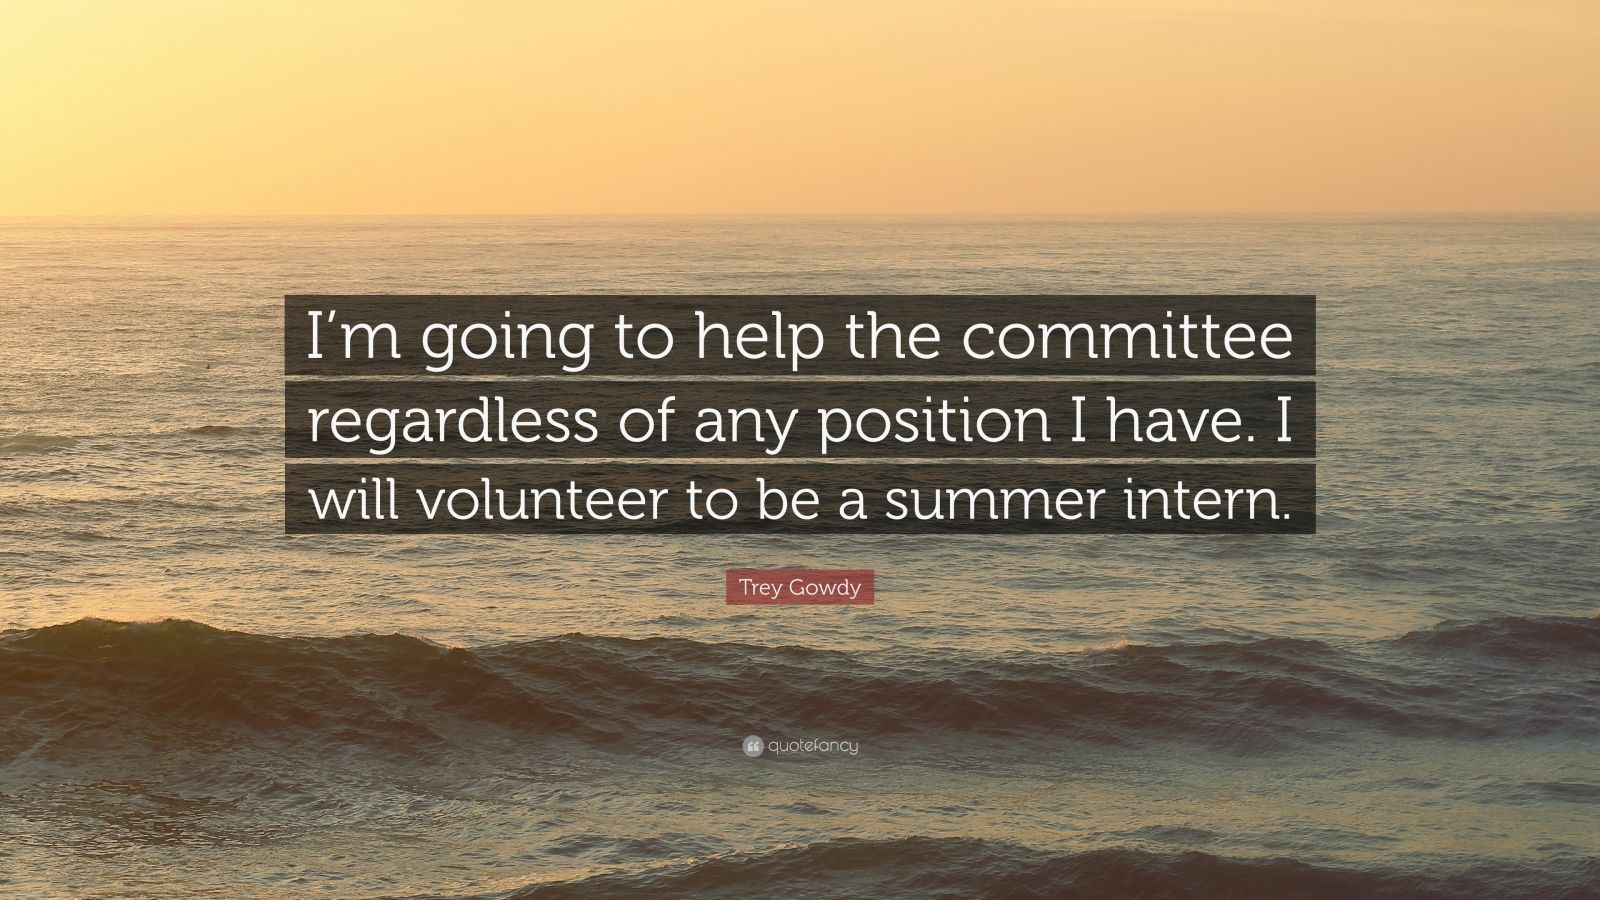 """Trey Gowdy Quote: """"I'm going to help the committee regardless of any position I have. I will volunteer to be a summer intern."""""""